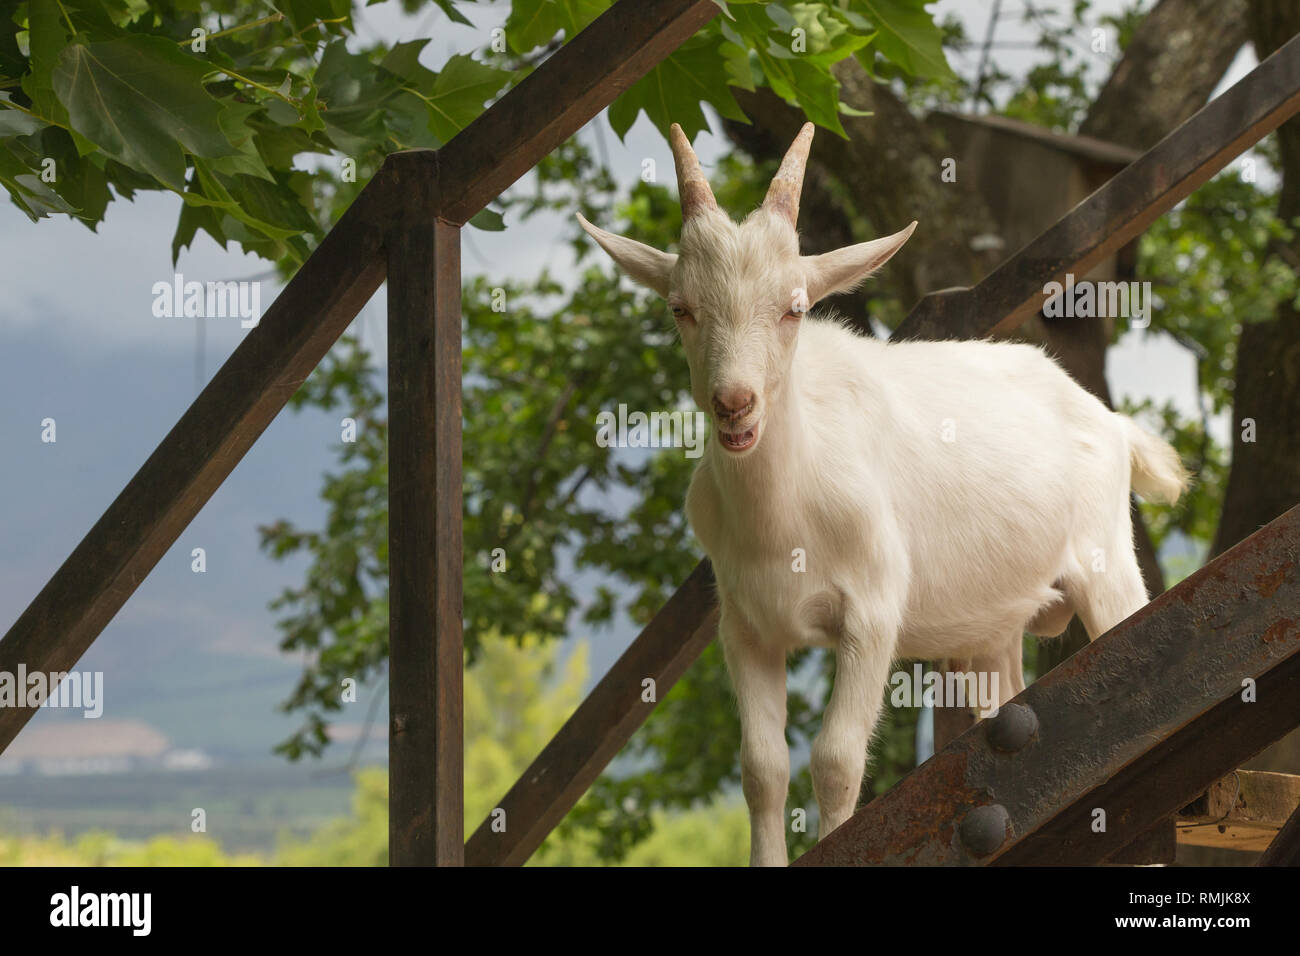 goat juvenile or young kid standing on steps of wooden bridge and looking down on everyone while bleating  Fairview wine estate, Paarl, Cape WInelands - Stock Image